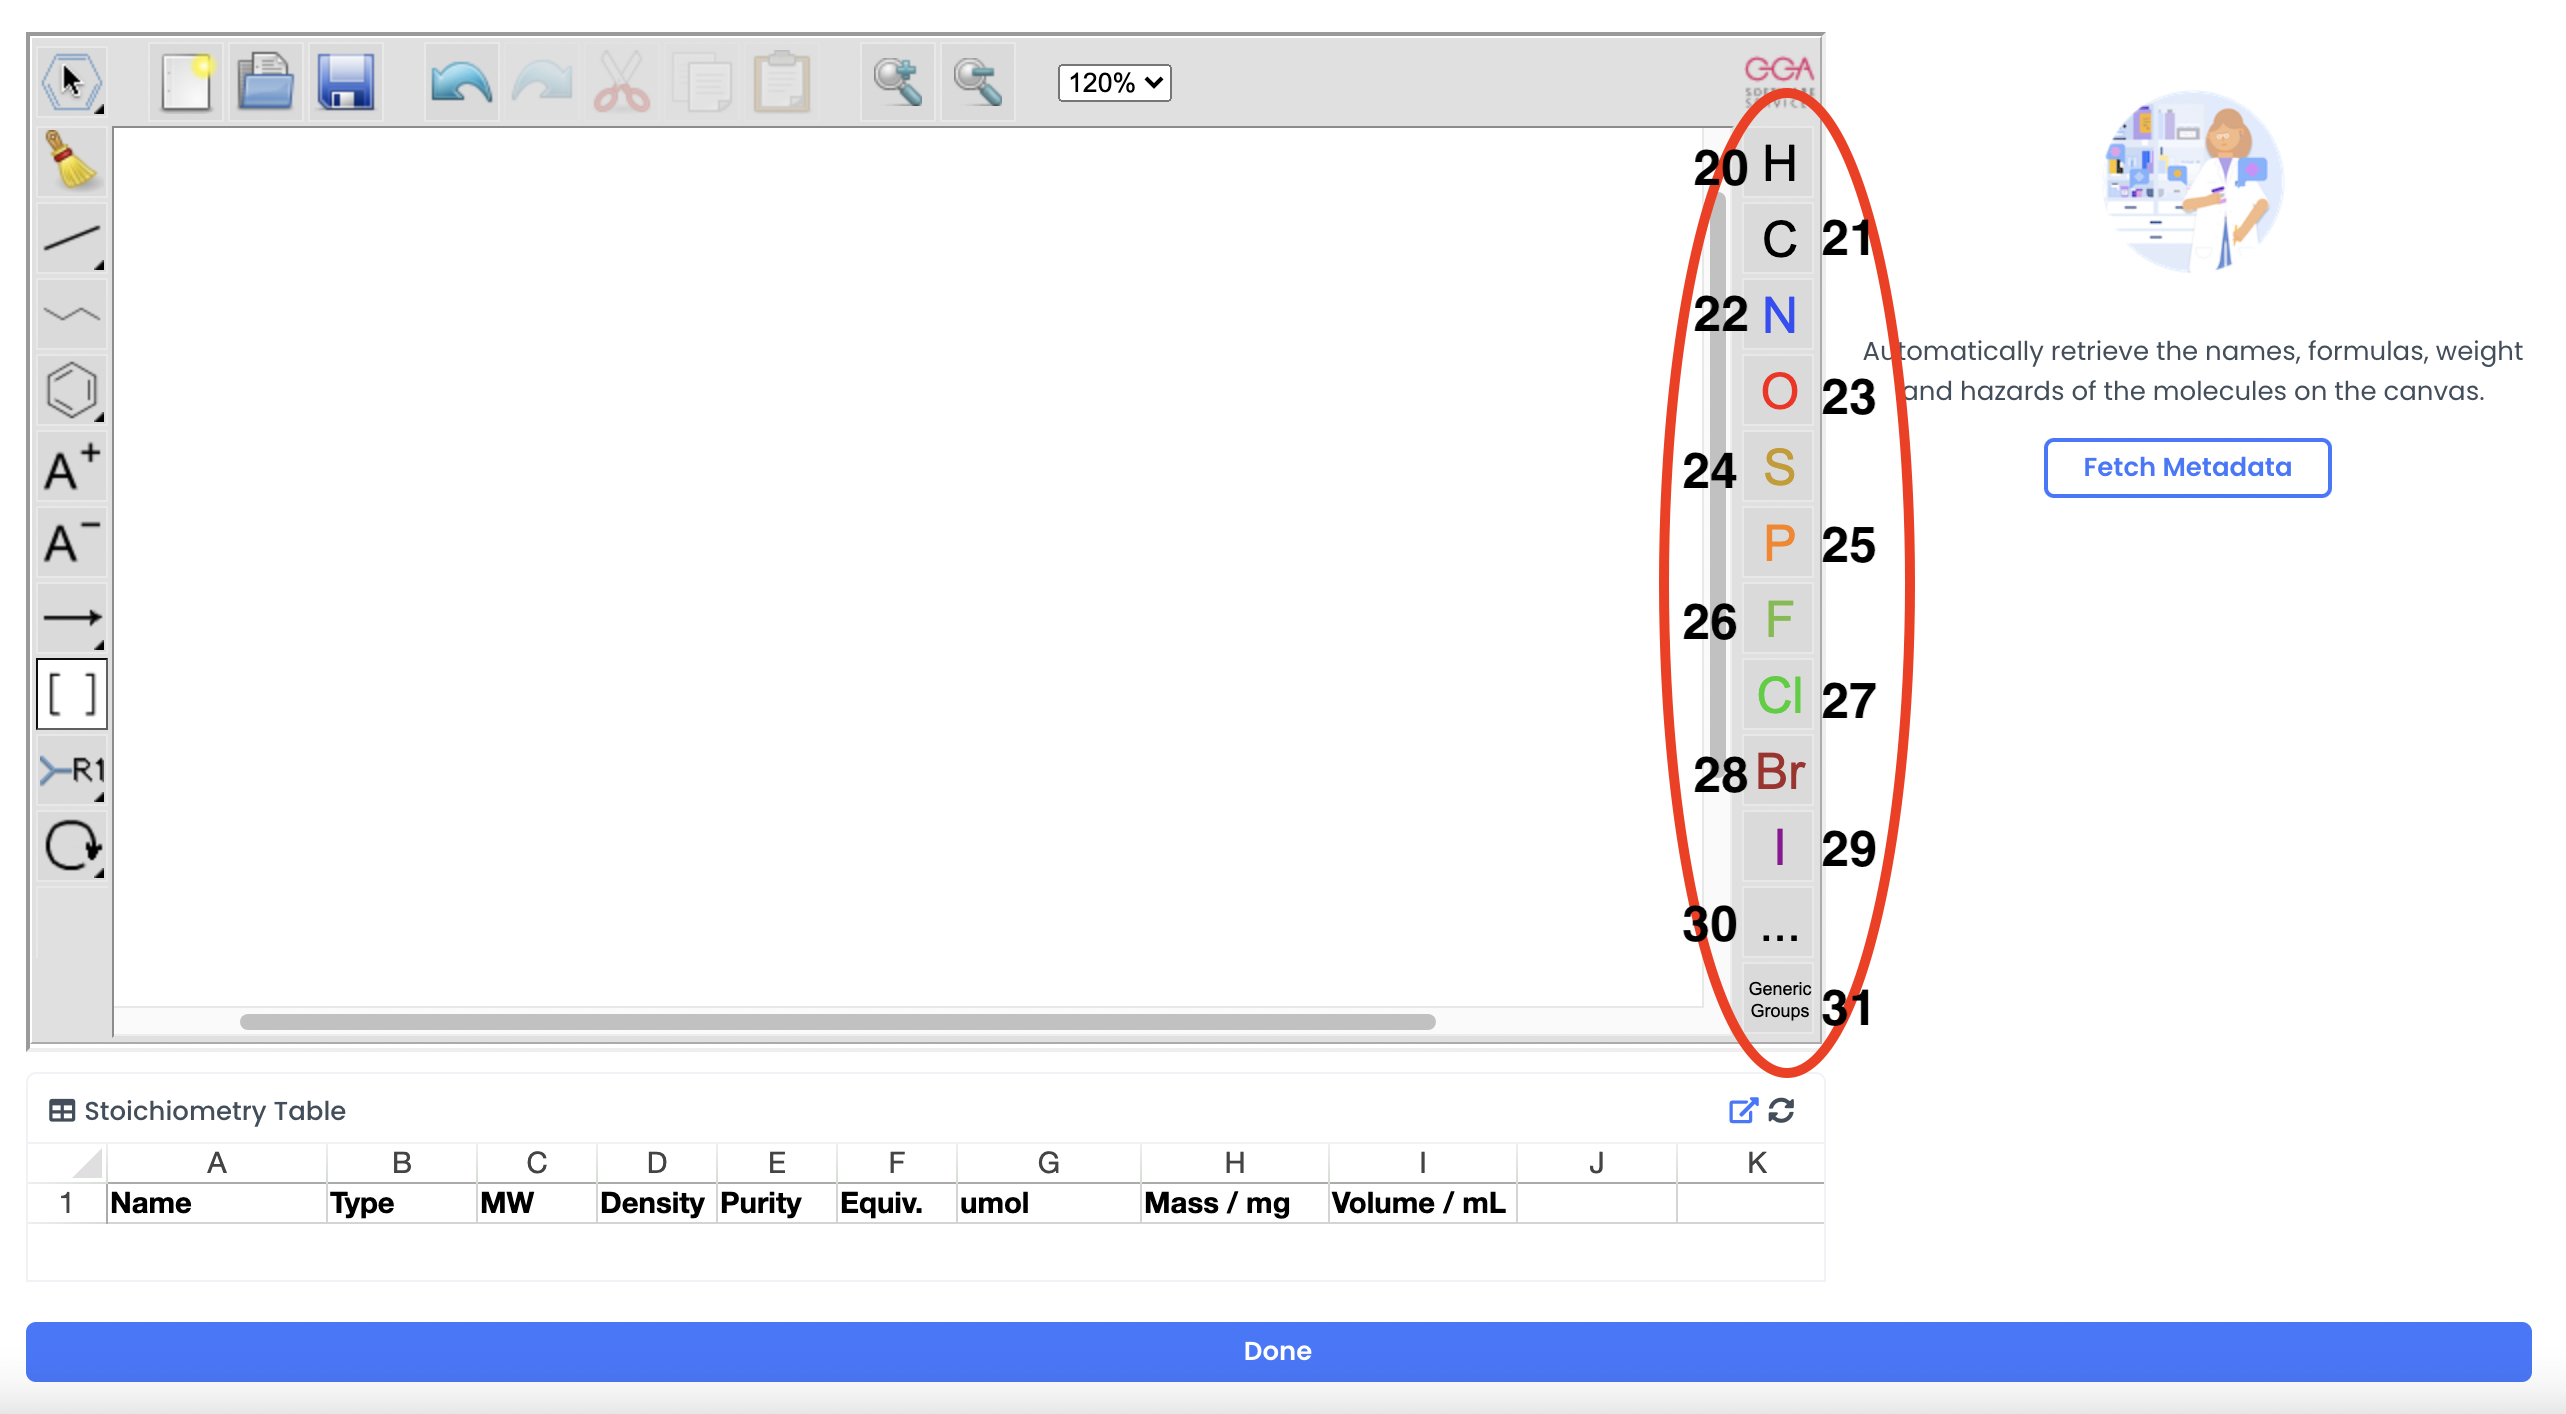 A screenshot of the right toolbar